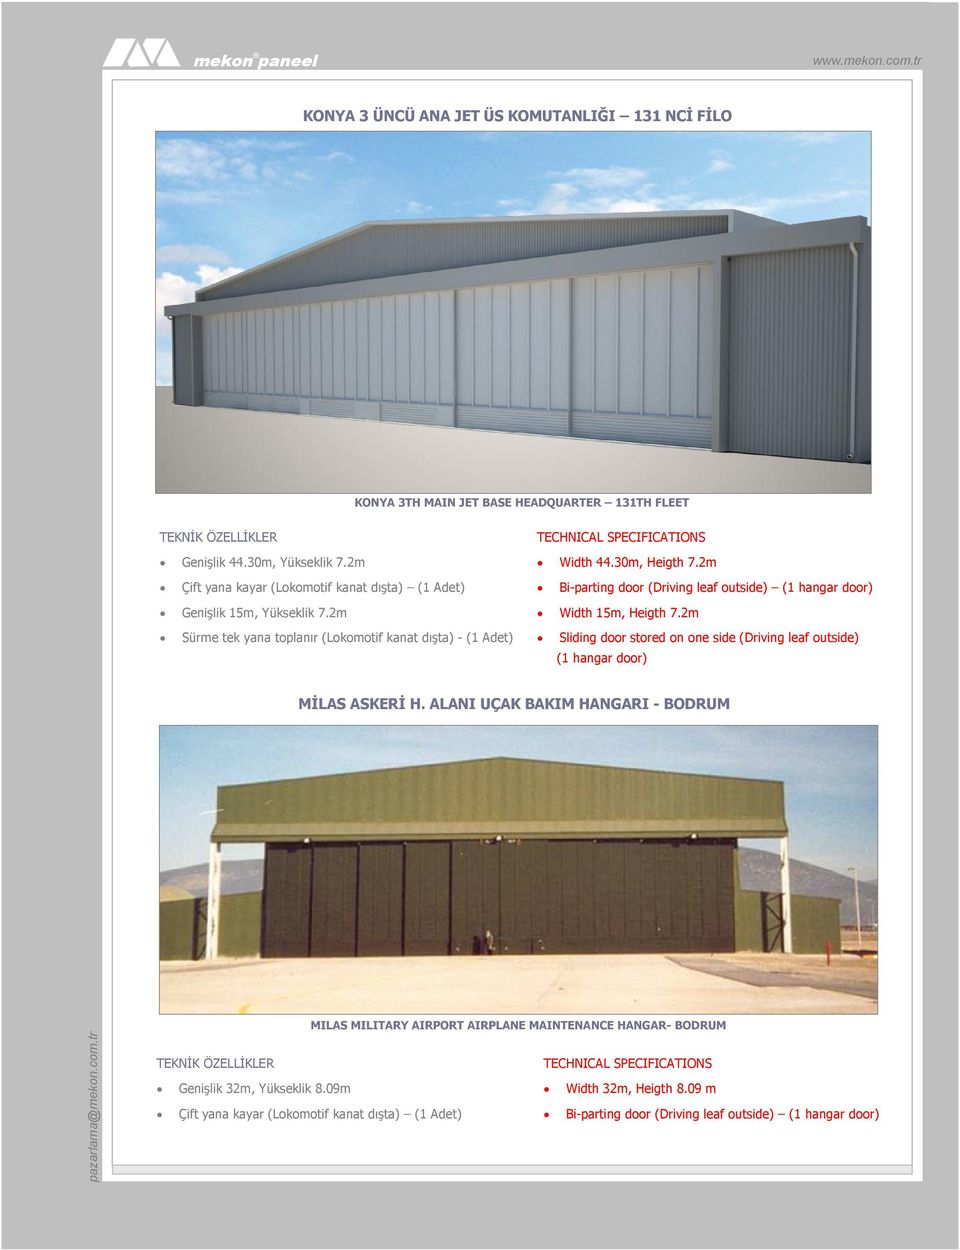 2m Bi-parting door (Driving leaf outside) (1 hangar door) Width 15m, Heigth 7.2m Sliding door stored on one side (Driving leaf outside) (1 hangar door) MİLAS ASKERİ H.